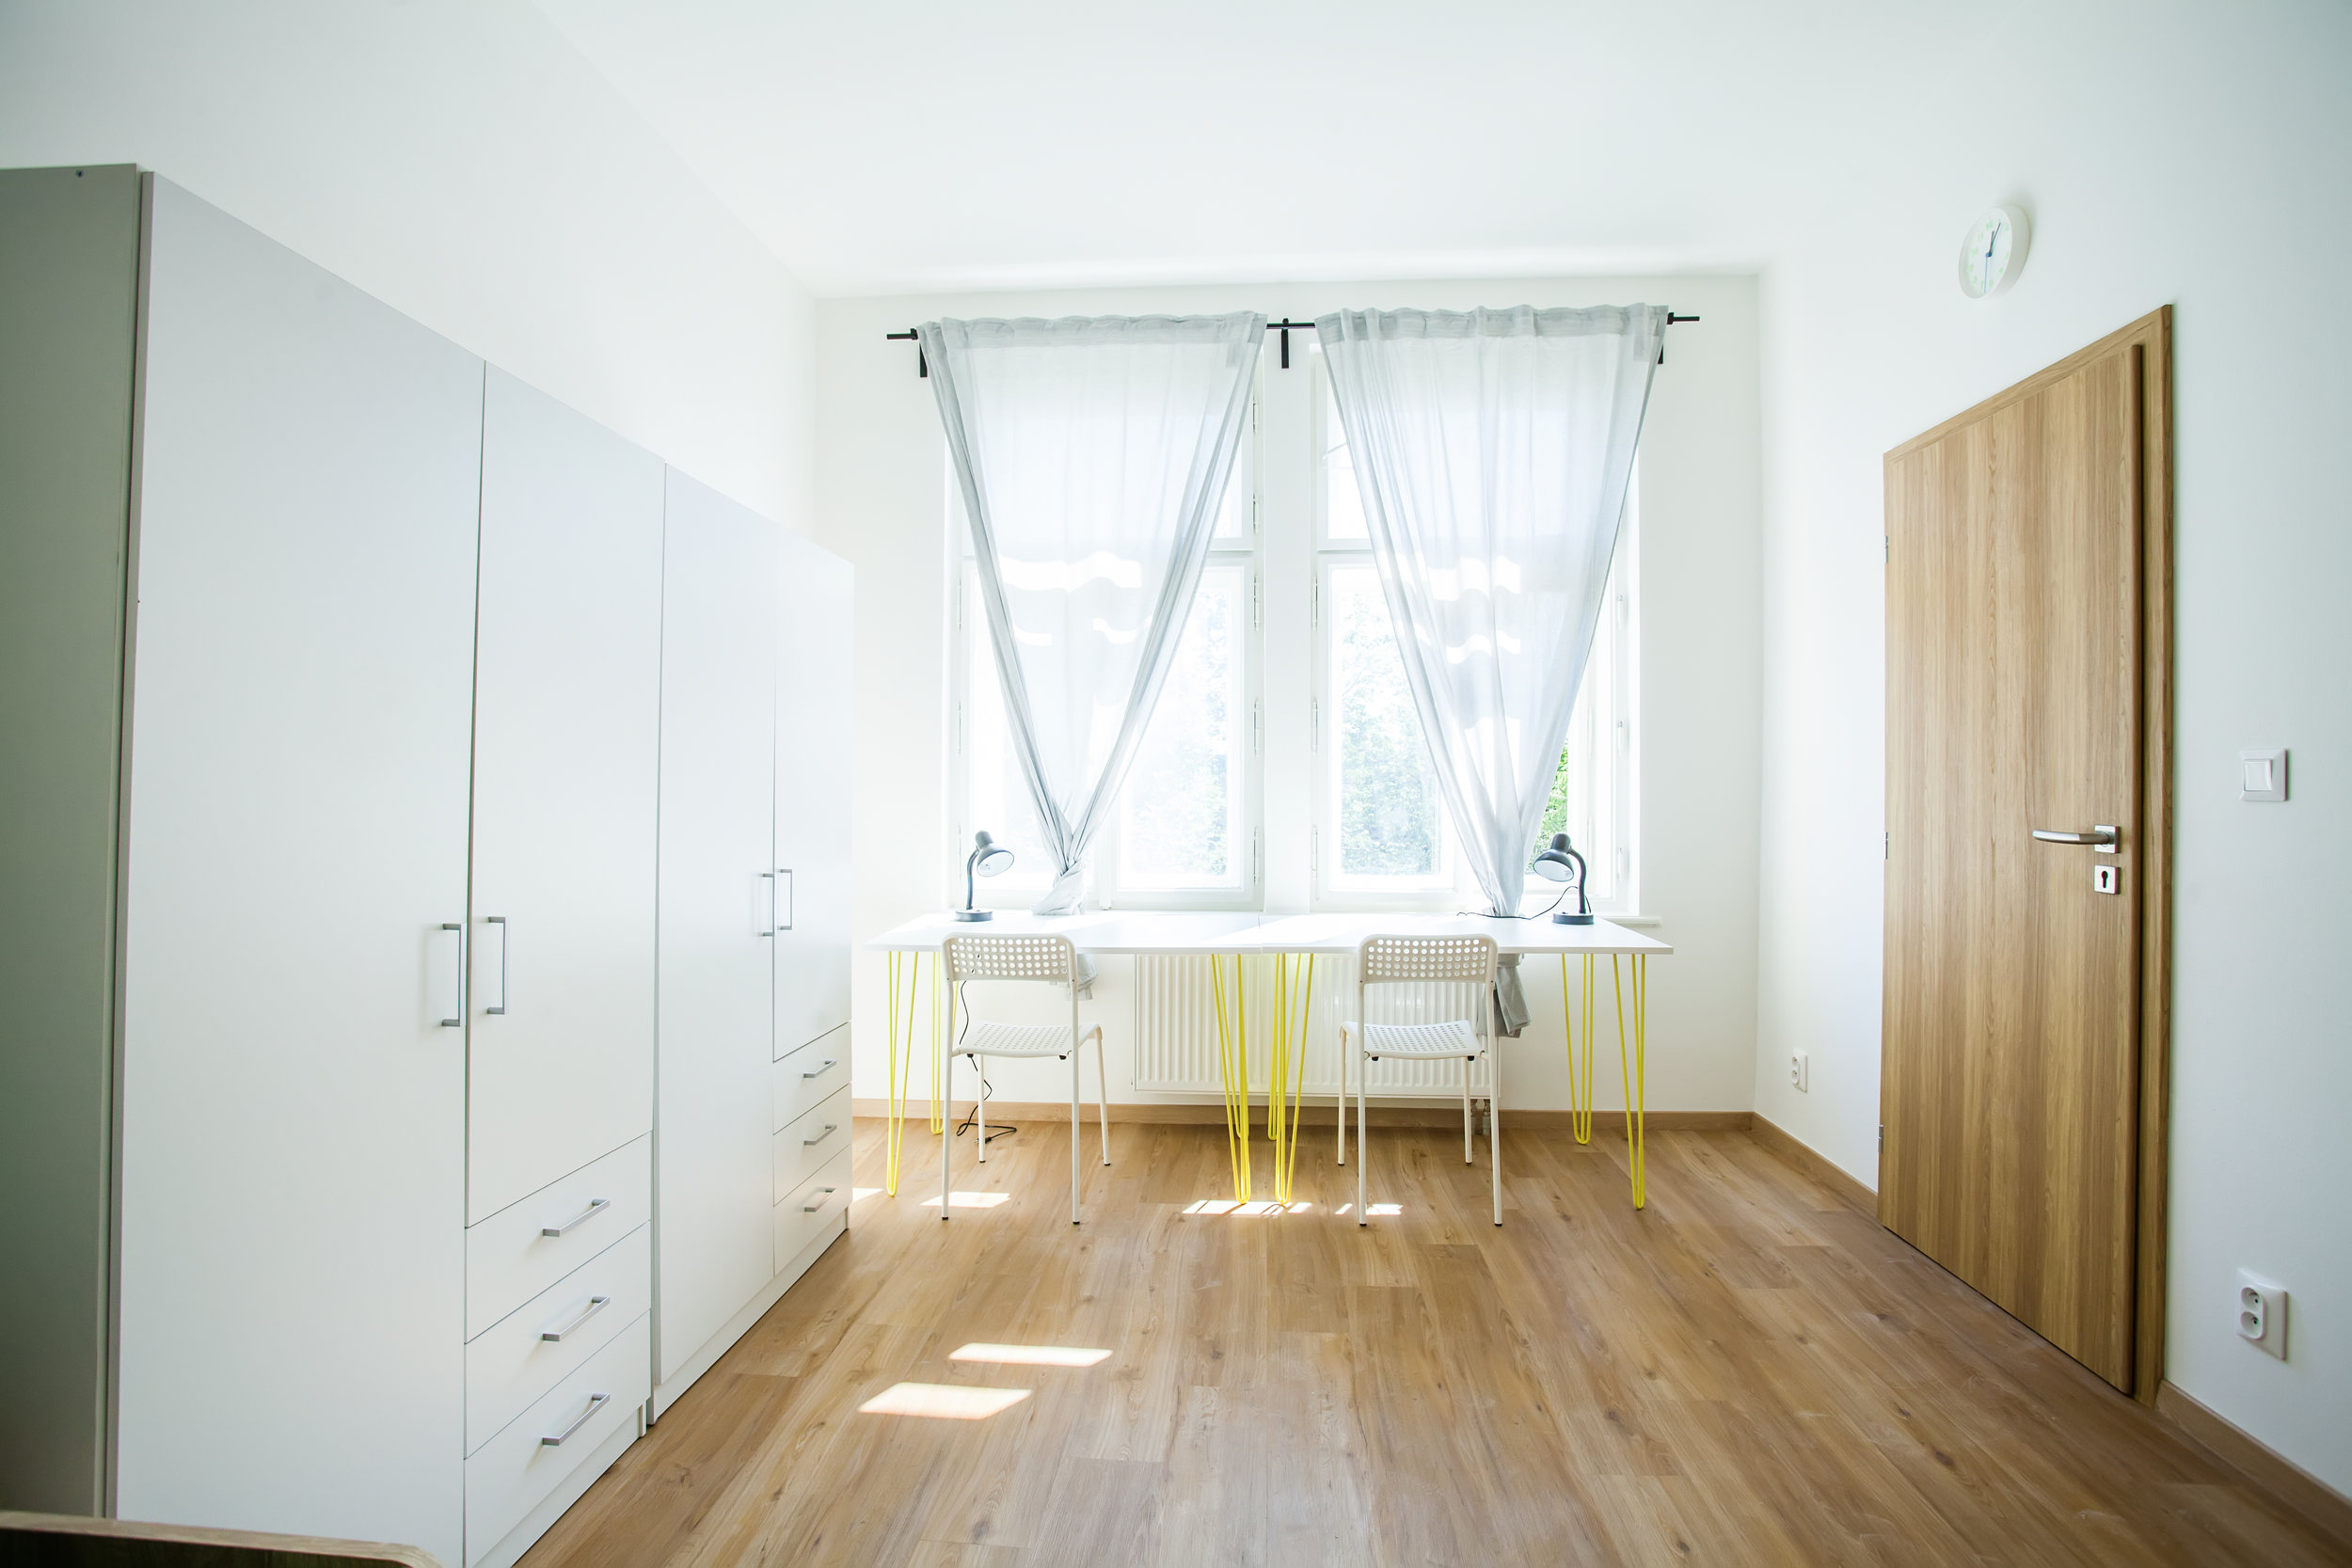 DOUBLE ROOM IN NA ŠACHTĚ 9 RESIDENCE - From 8000 czk